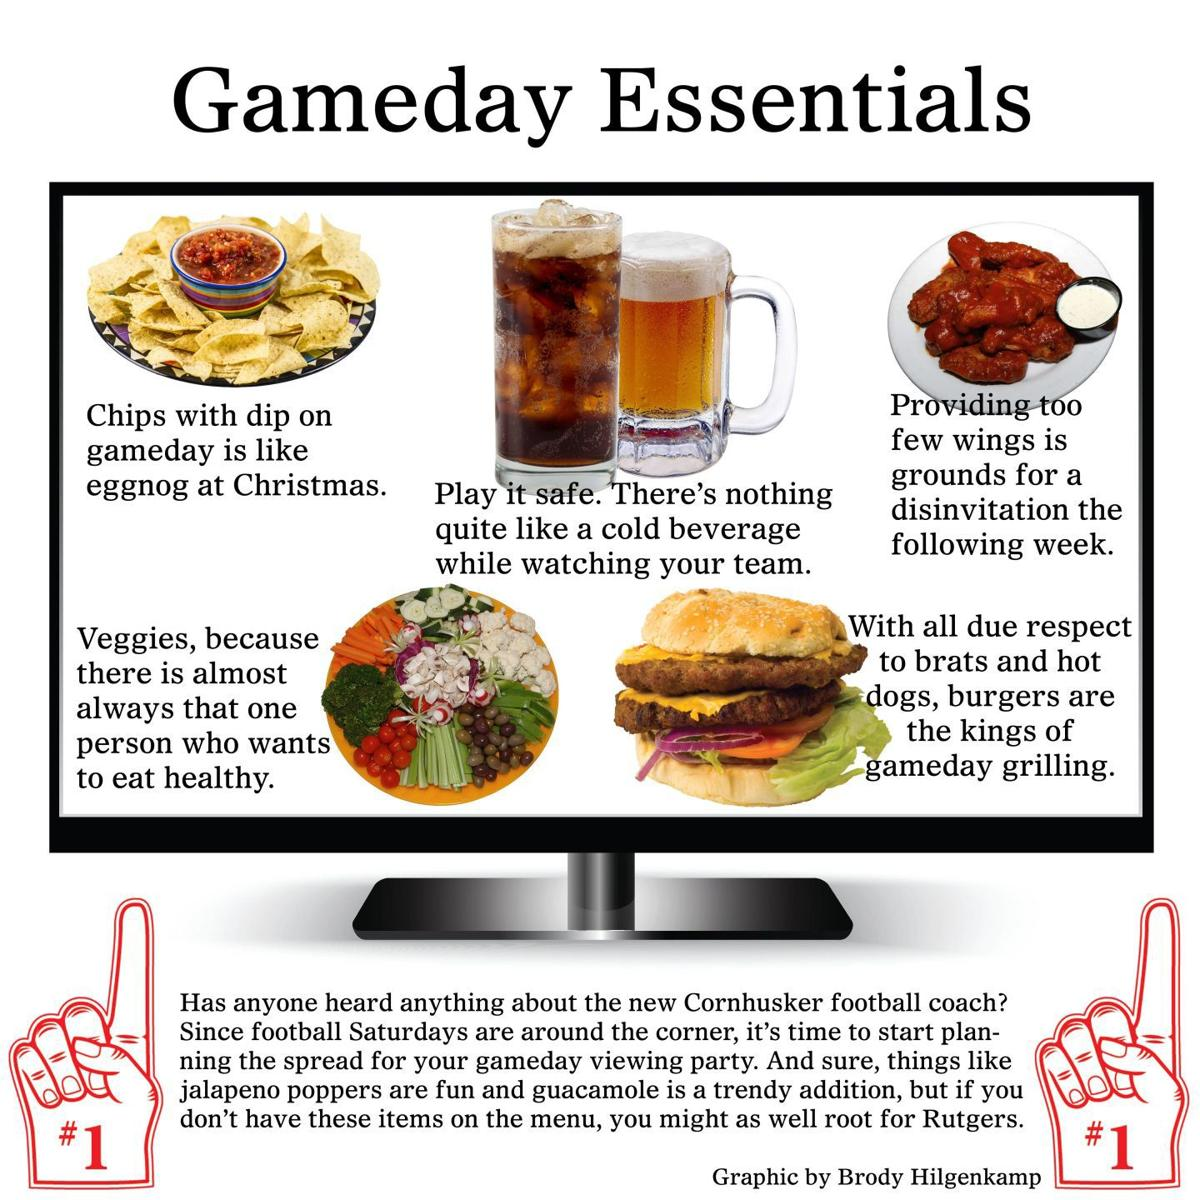 The perfect football viewing spread | Ralston Recorder | omaha.com